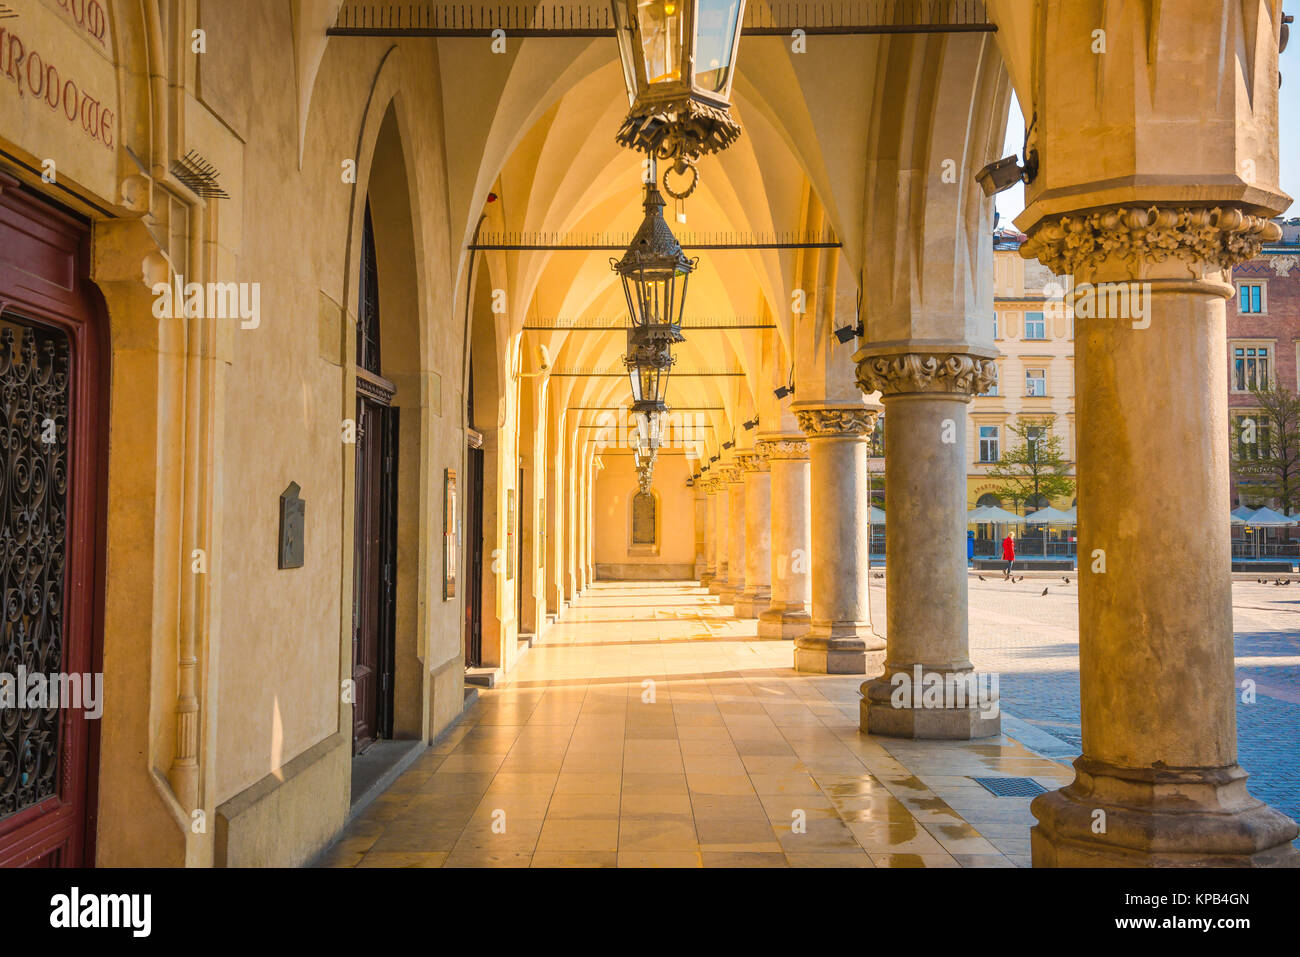 Arcade colonnade Europe, view of a colonnade on the east side of the Renaissance era Cloth Hall in the Market Square - Stock Image